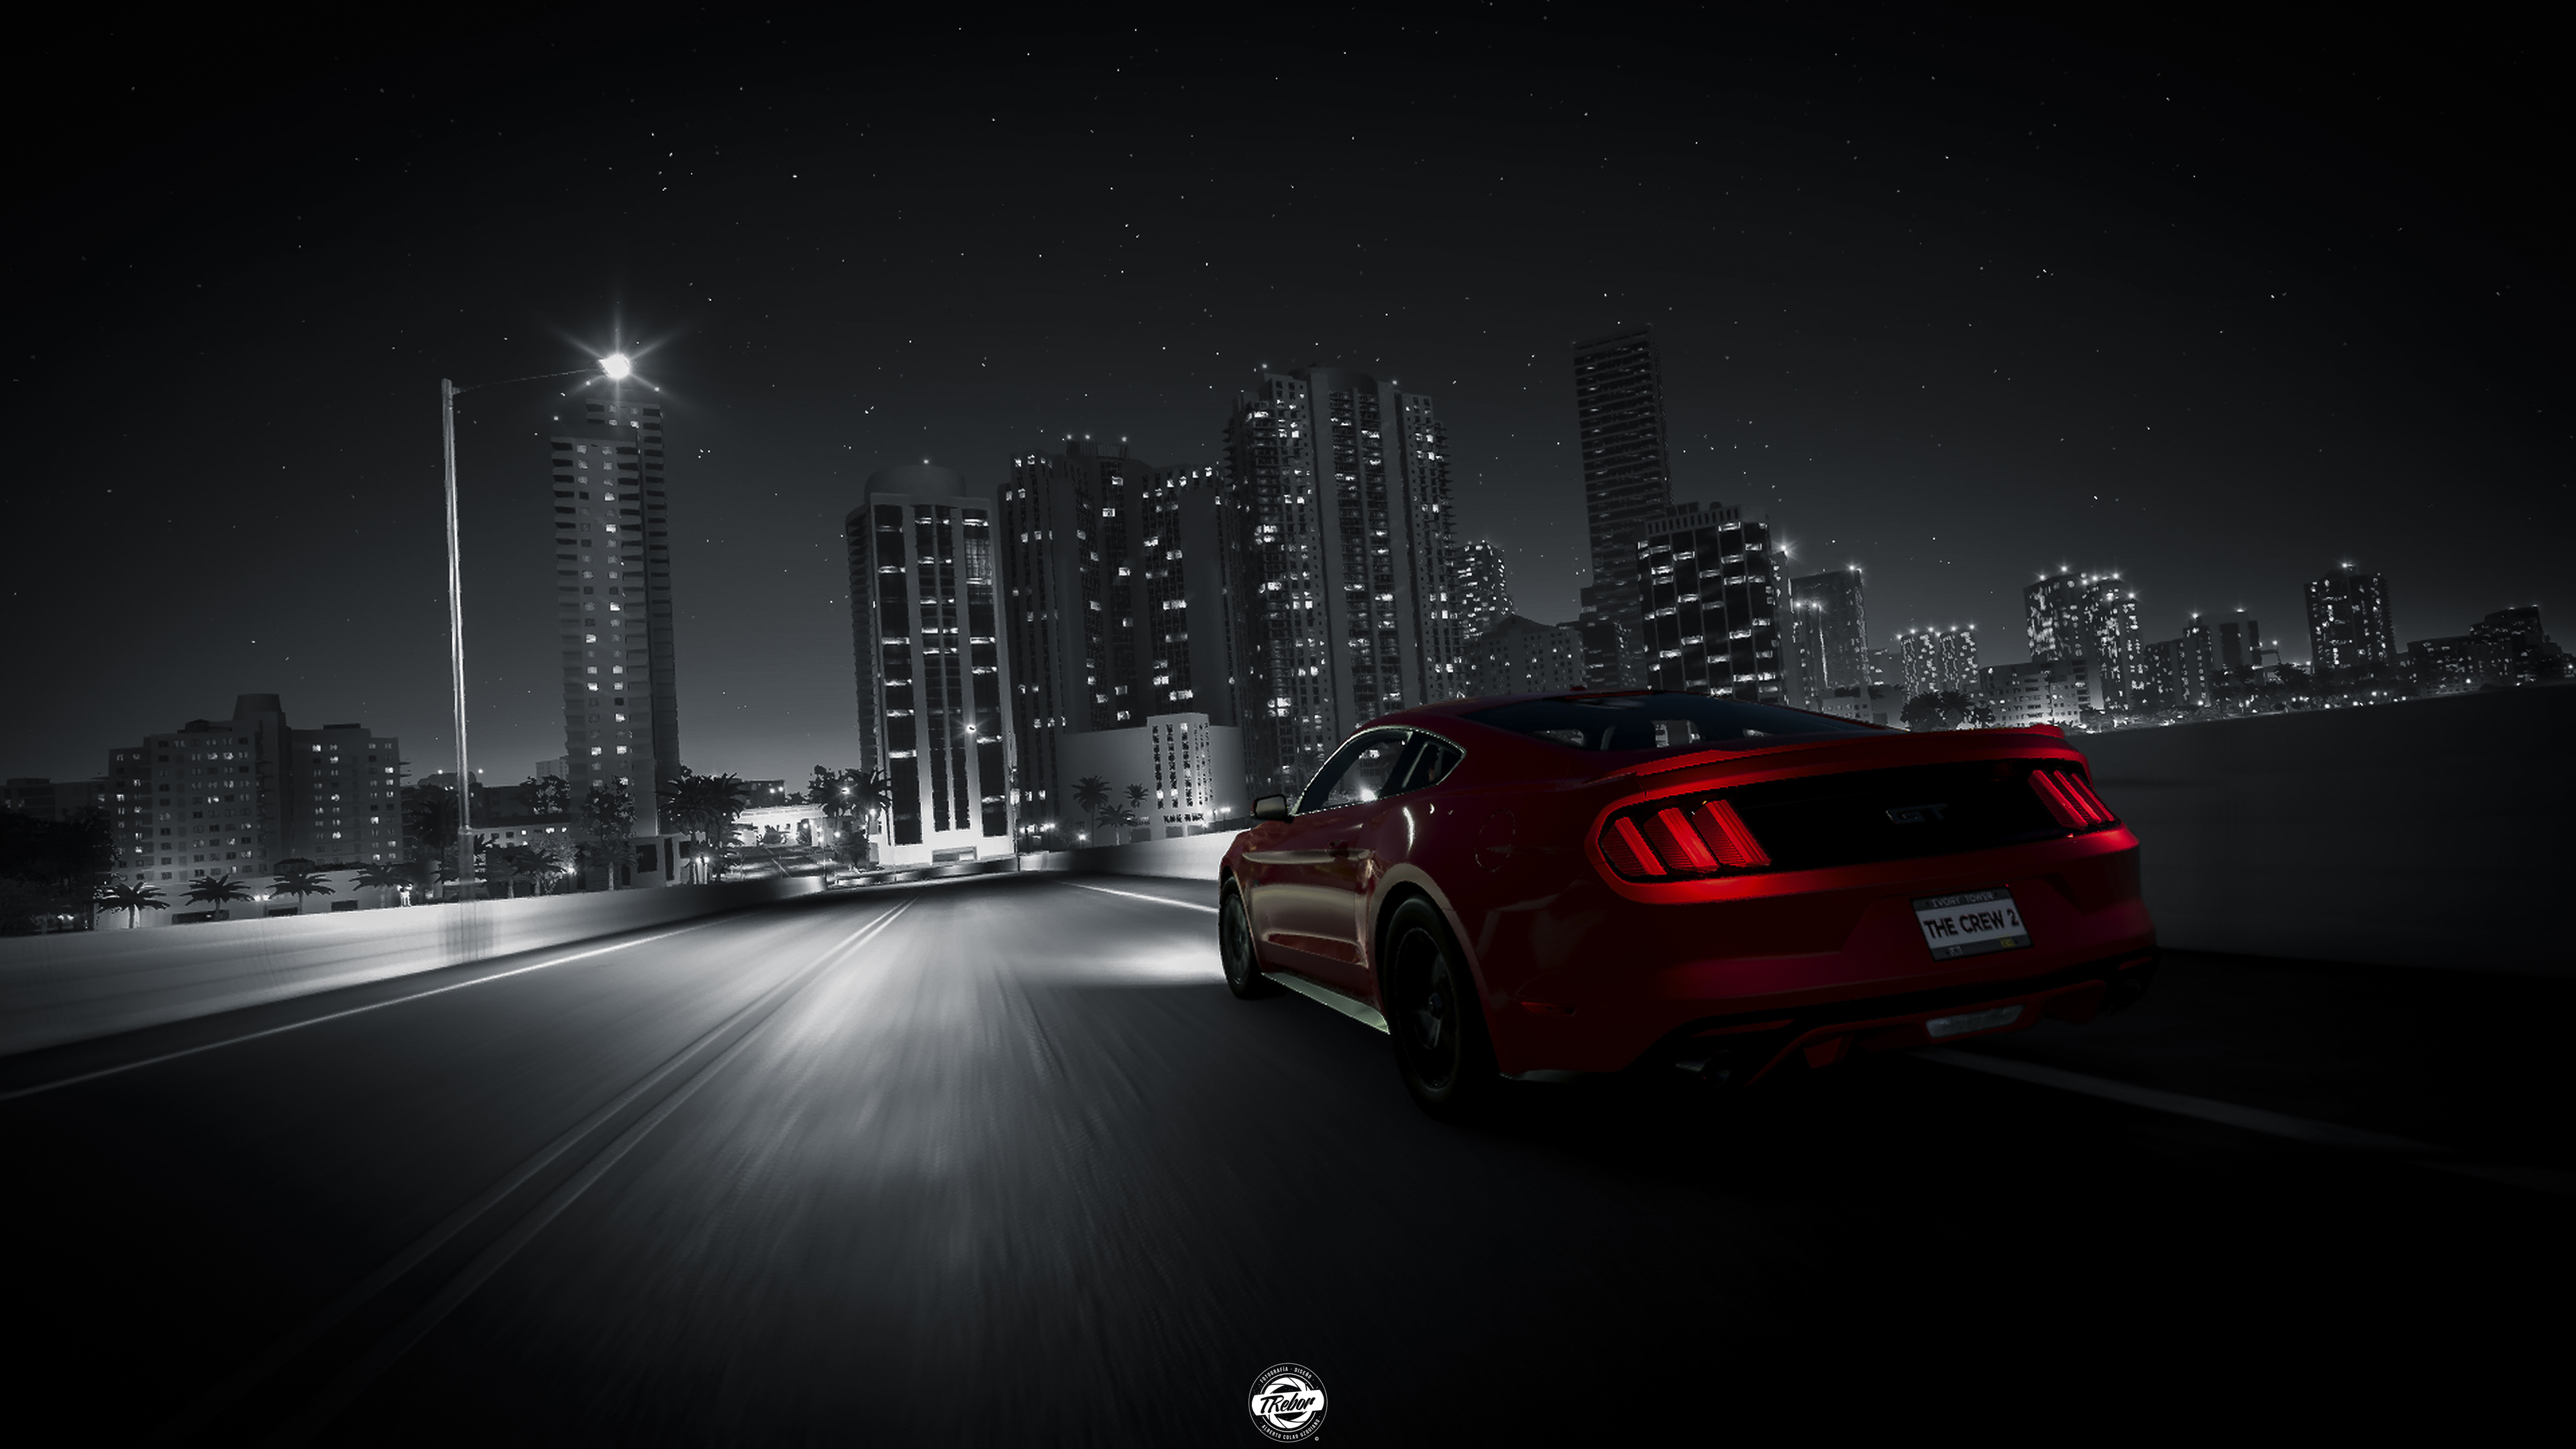 3d Driving Games Download >> The Crew 2 Ford Mustang Rear Lights 4k, HD Games, 4k Wallpapers, Images, Backgrounds, Photos and ...